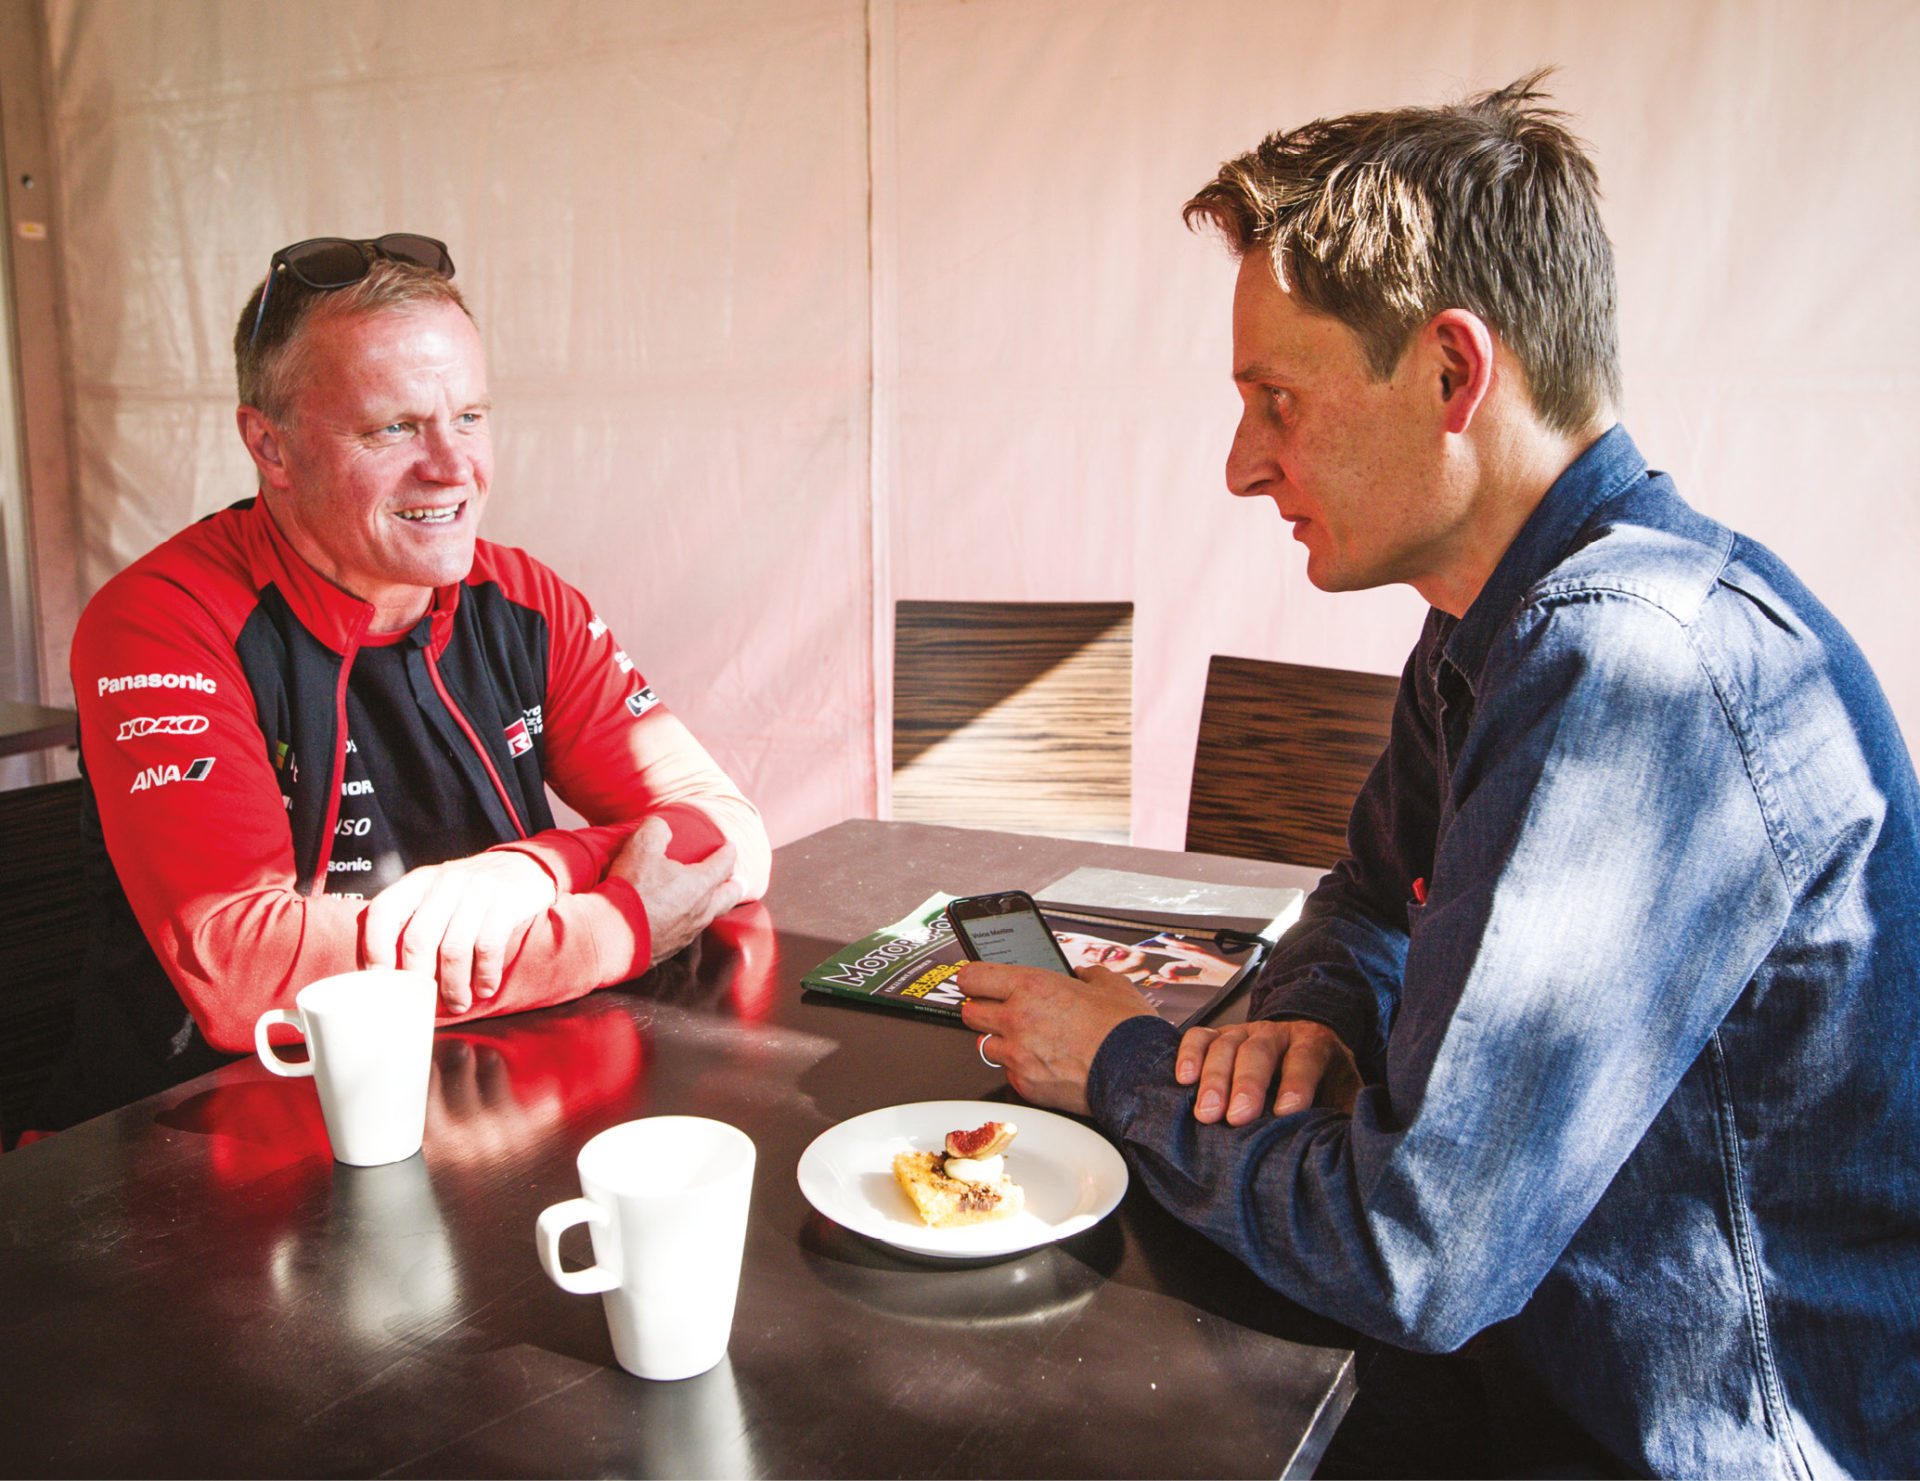 Mäkinen was a fiercely private driver who did not relish press interviews